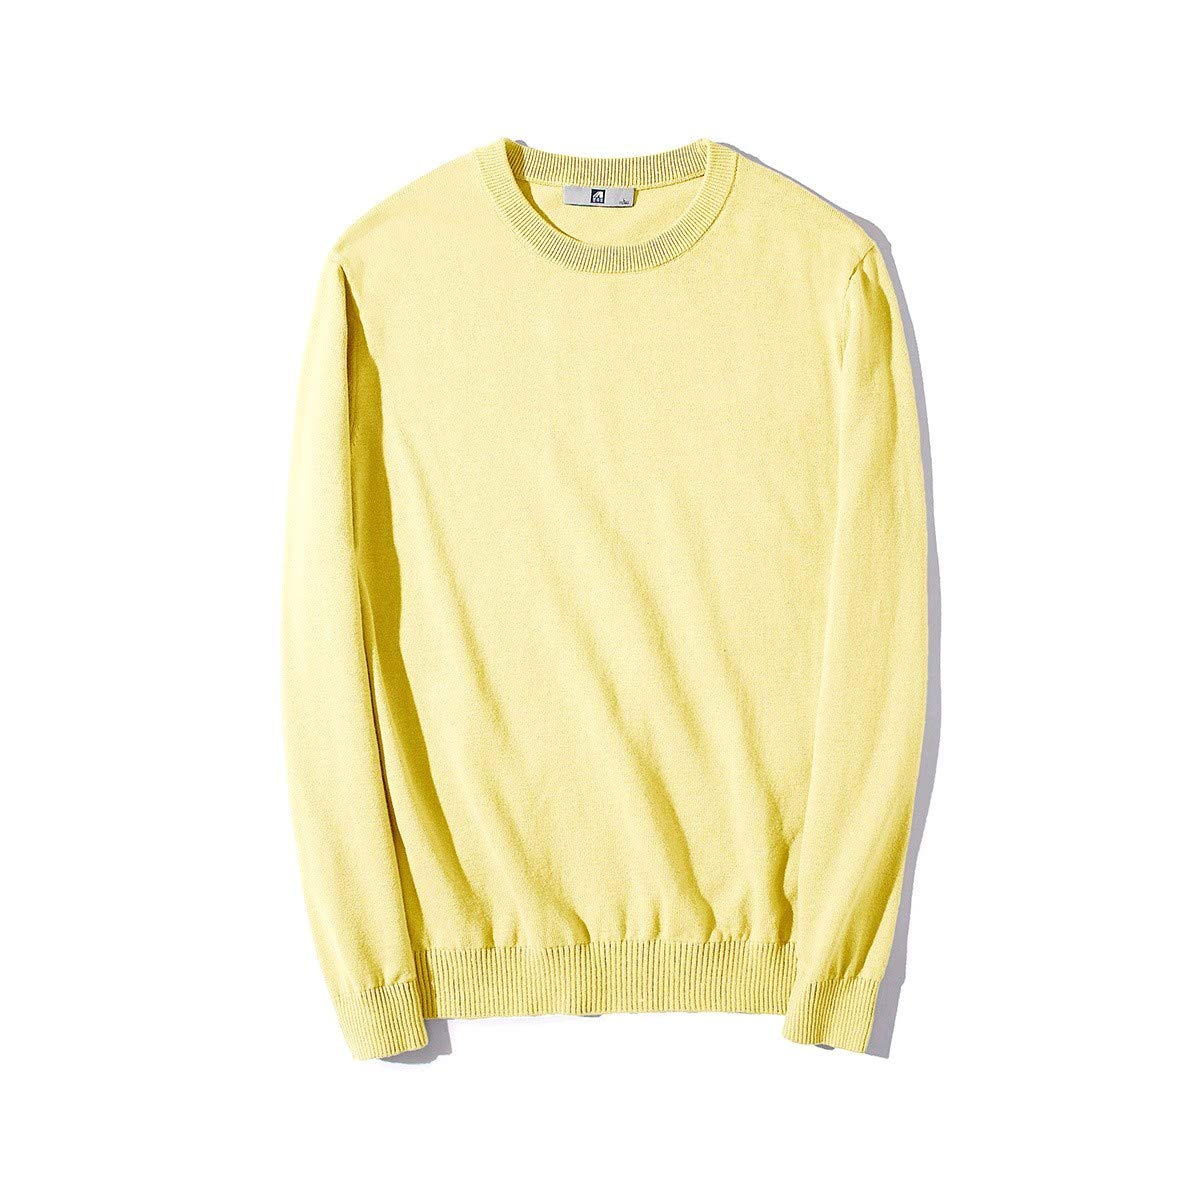 YUNY Mens His and Her Juniors Colortone Knitting Tshirt Sweater 3 XL